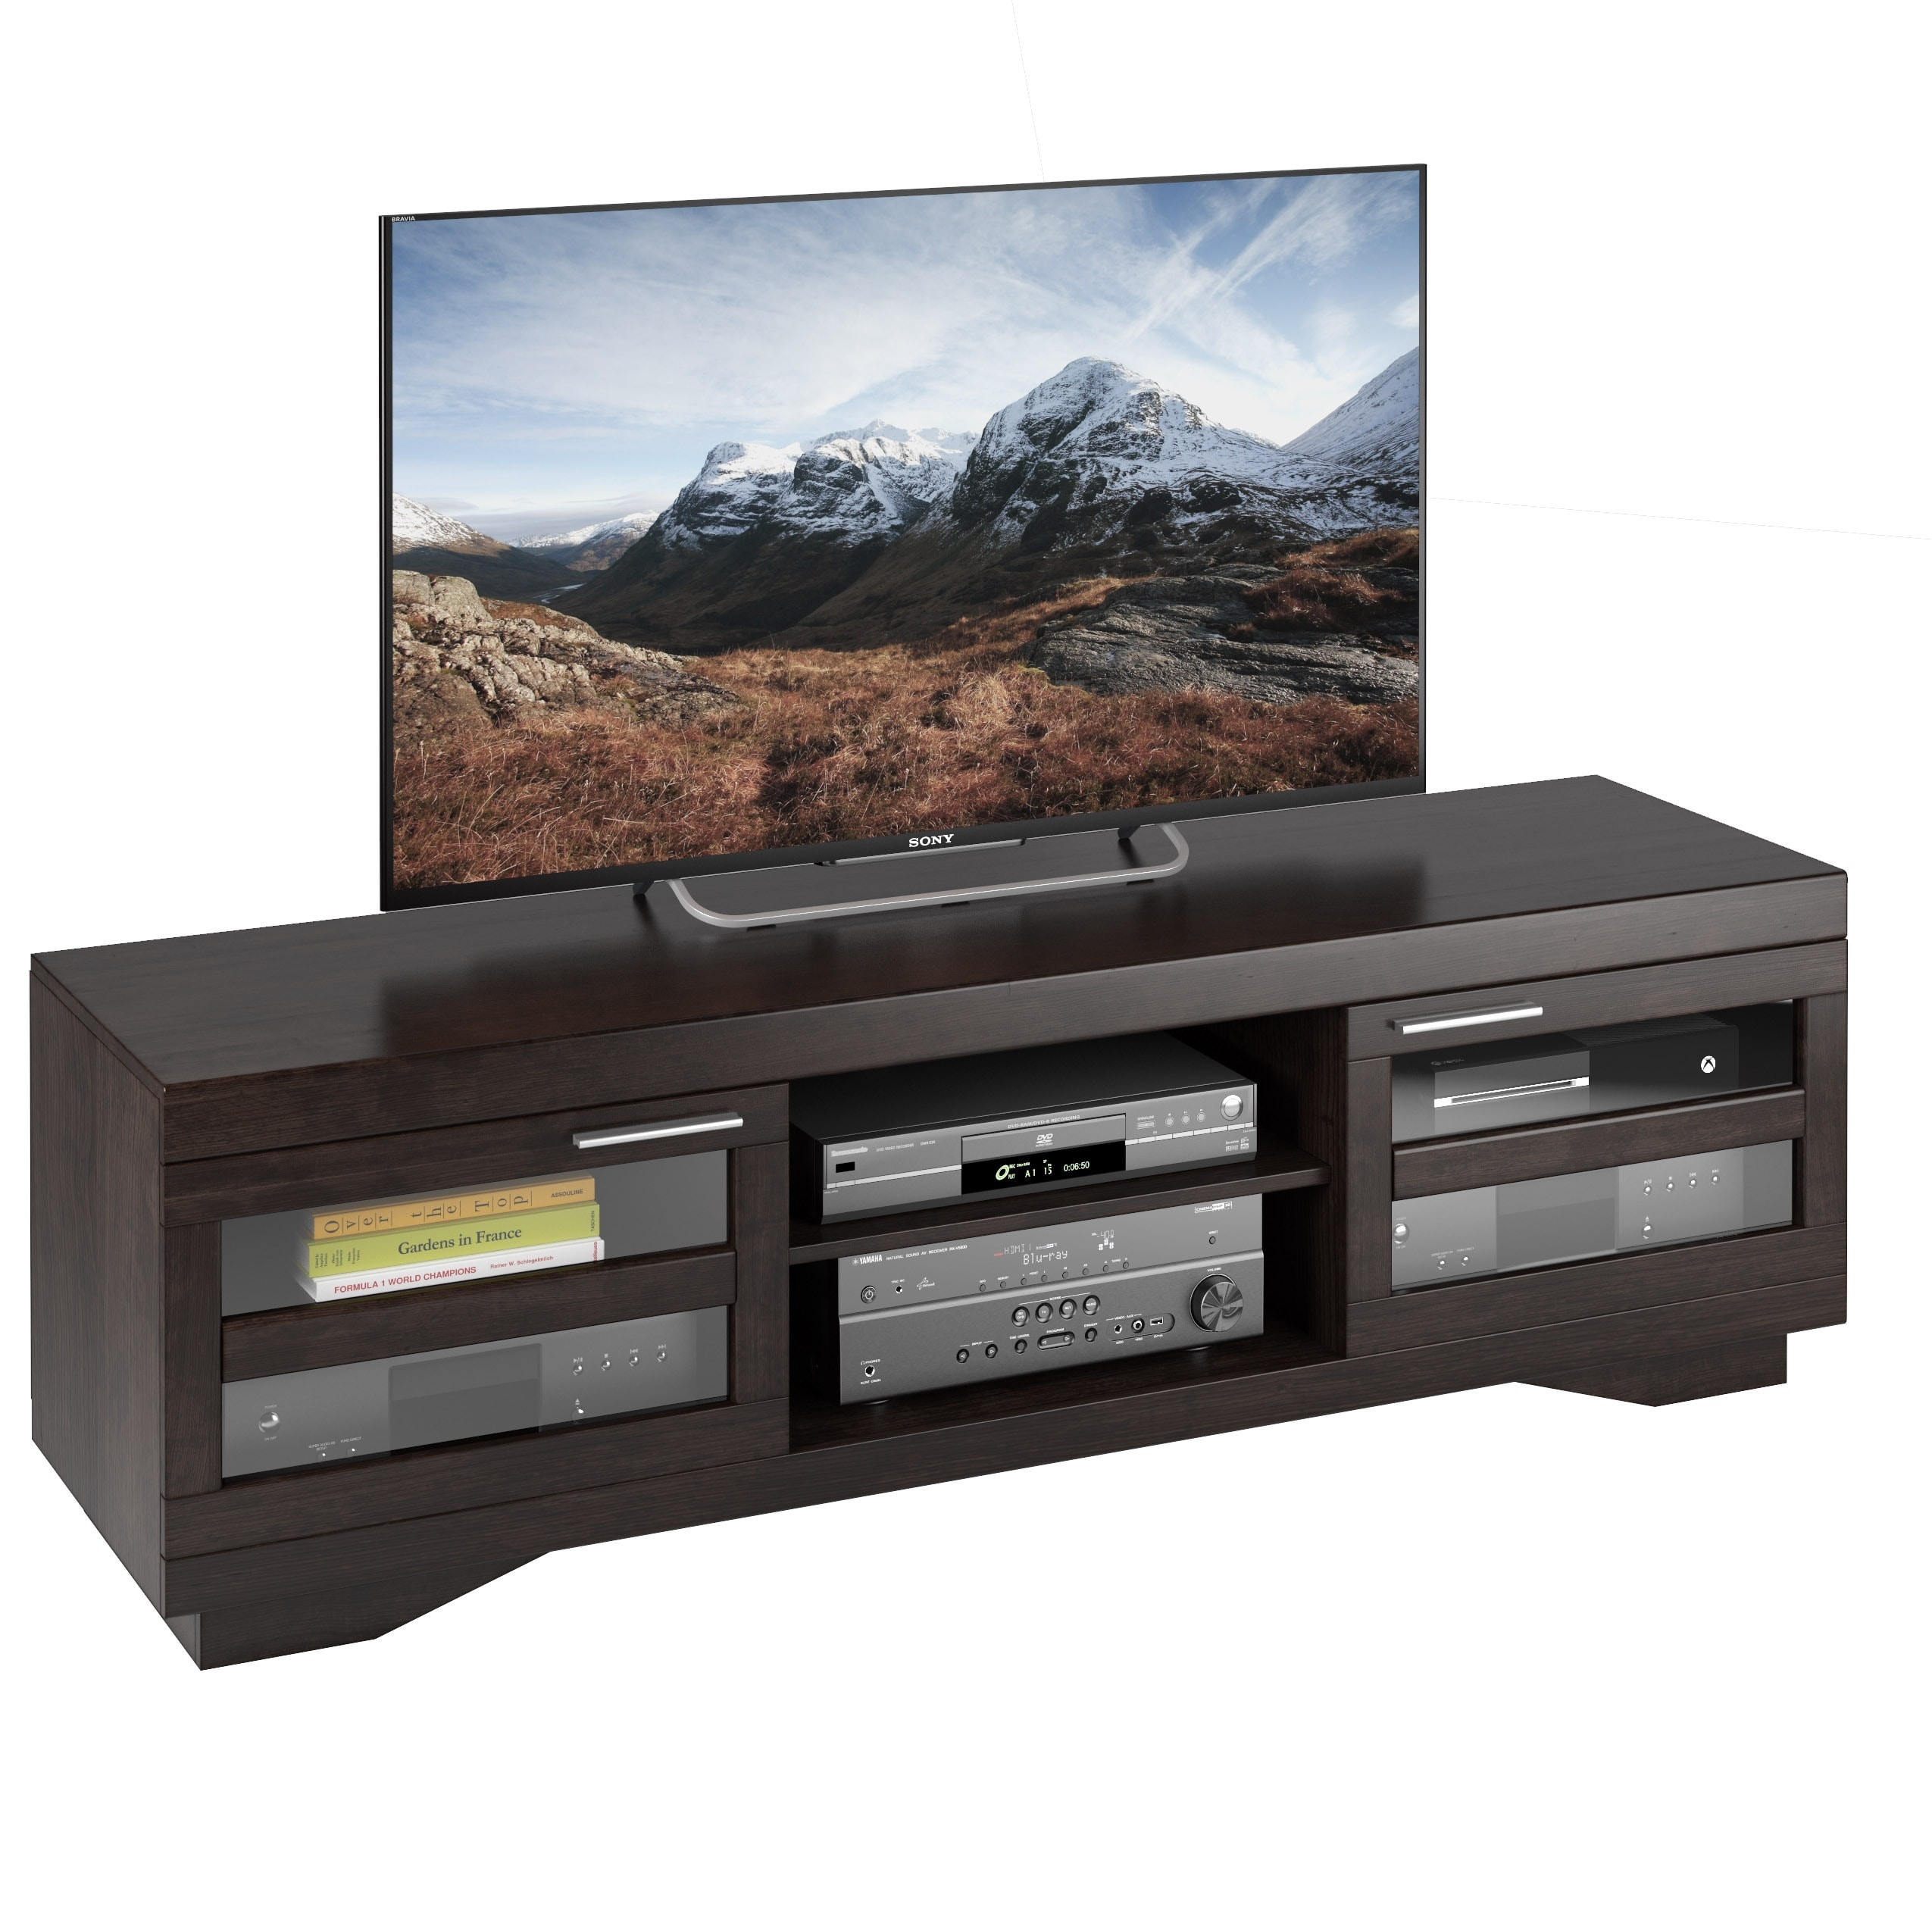 Sonax Granville Mocha Warm Cinnamon Wood Veneer 66-inch TV Bench at Sears.com